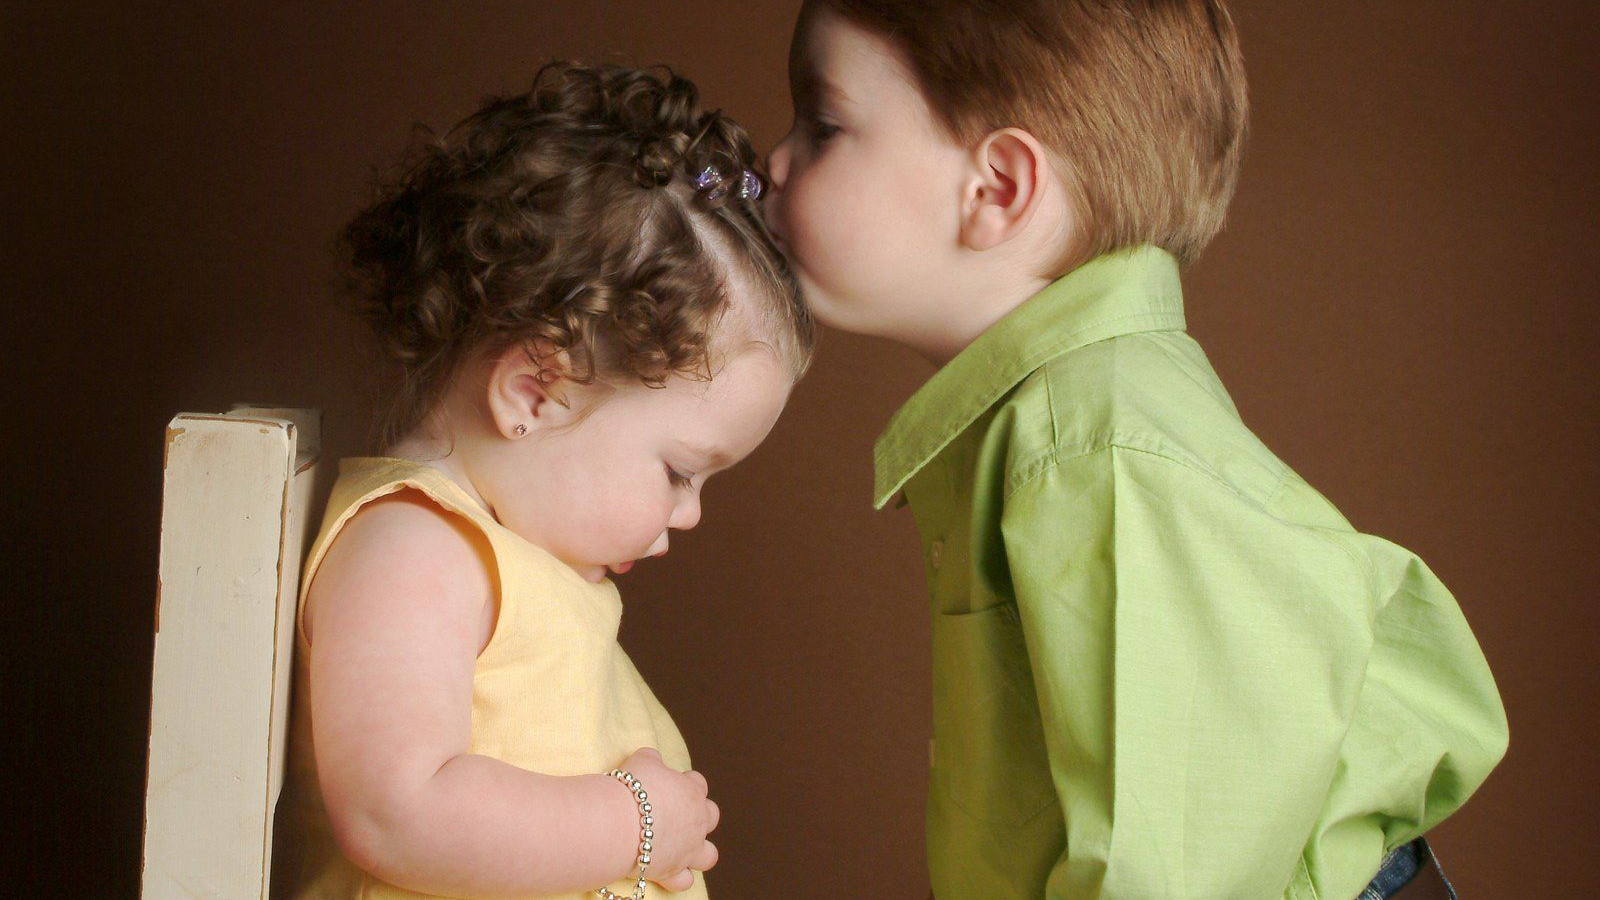 Free Download Cute Little Baby Girl And Boy Kissing Hd Wallpaper Cute Little 1600x1200 For Your Desktop Mobile Tablet Explore 49 Cute Baby Girl Wallpapers Images Of Cute Wallpapers